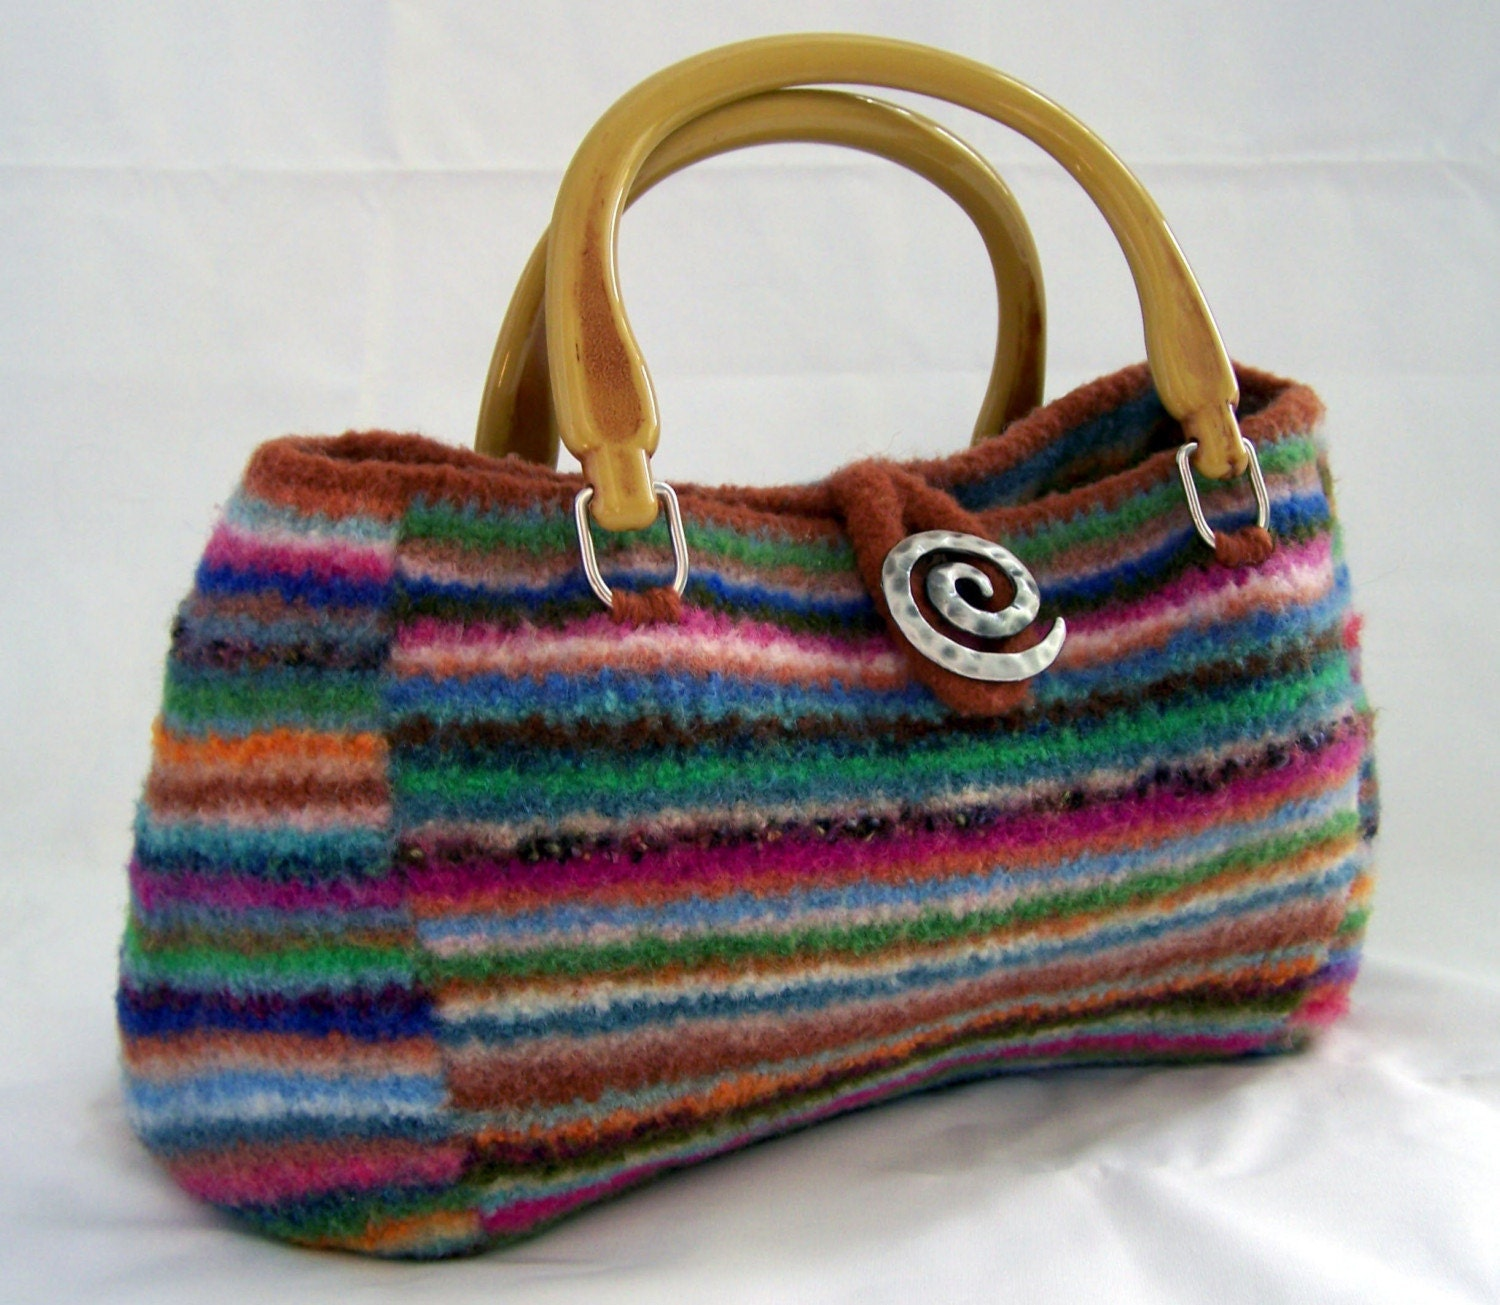 Knitted Purse Pattern : Knitting PATTERN Felted Doctor Bag Purse Satchel PDF